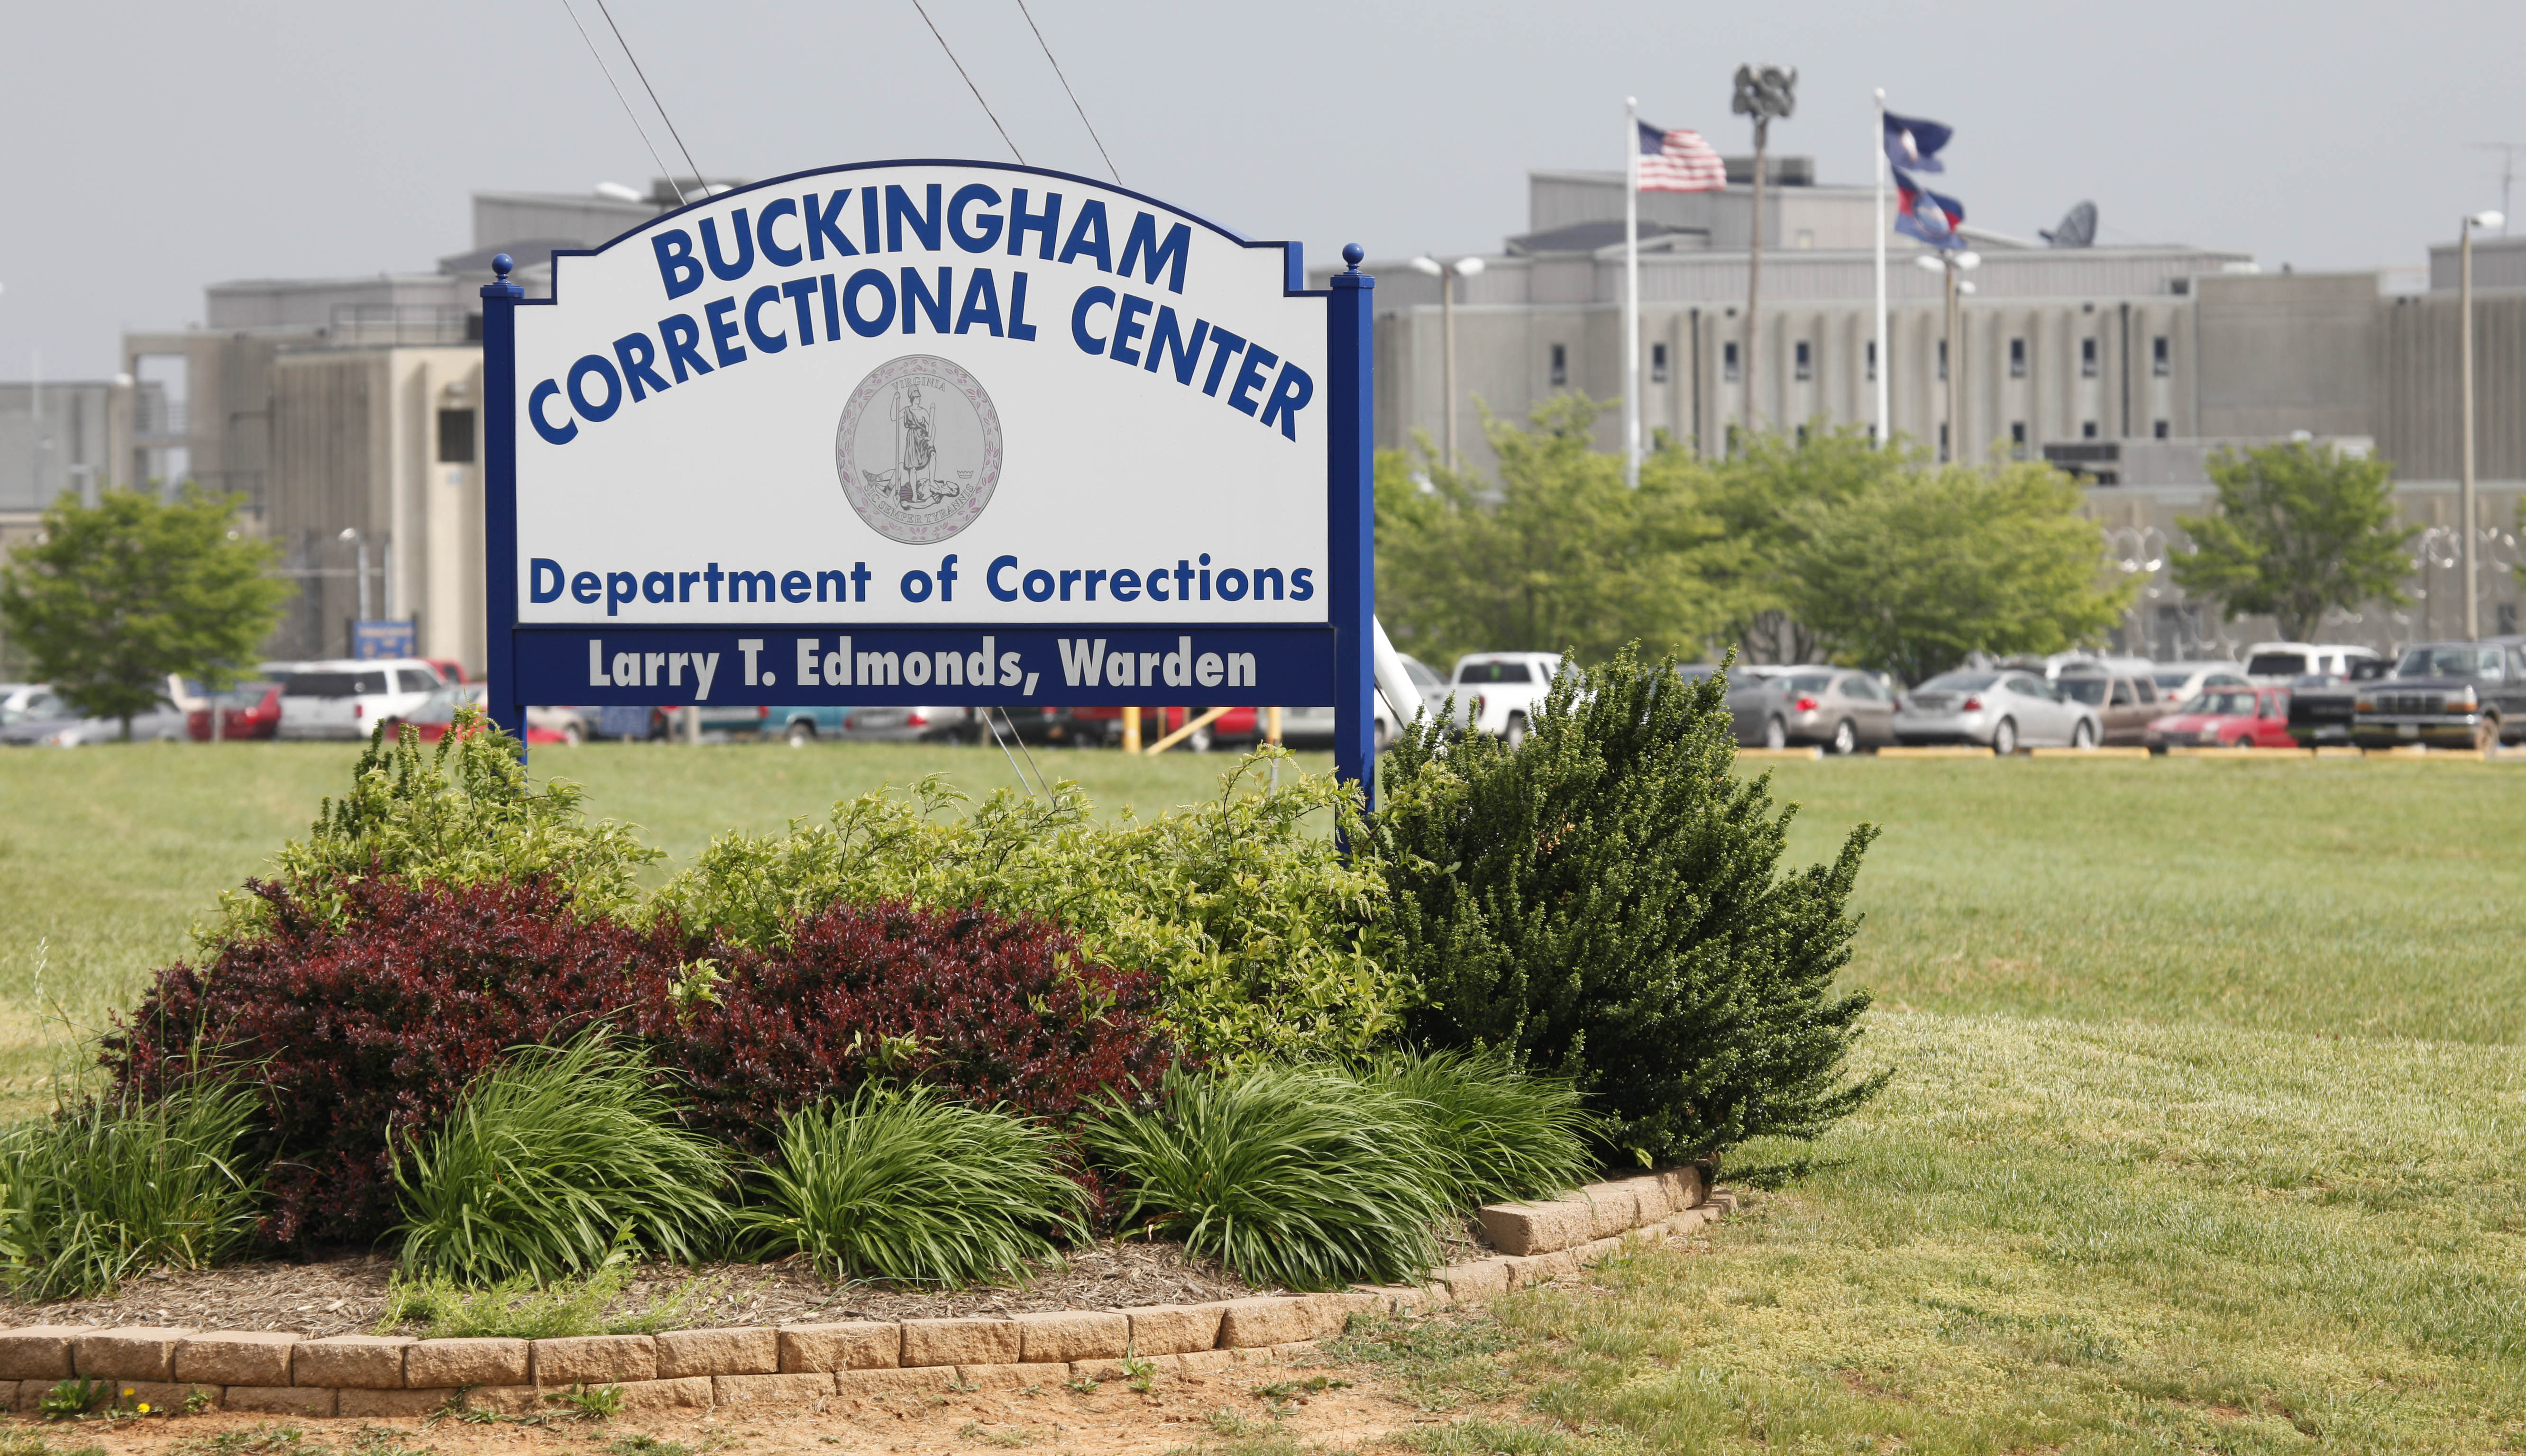 8-year-old Virginia girl was strip searched during a state prison visit, authorities say